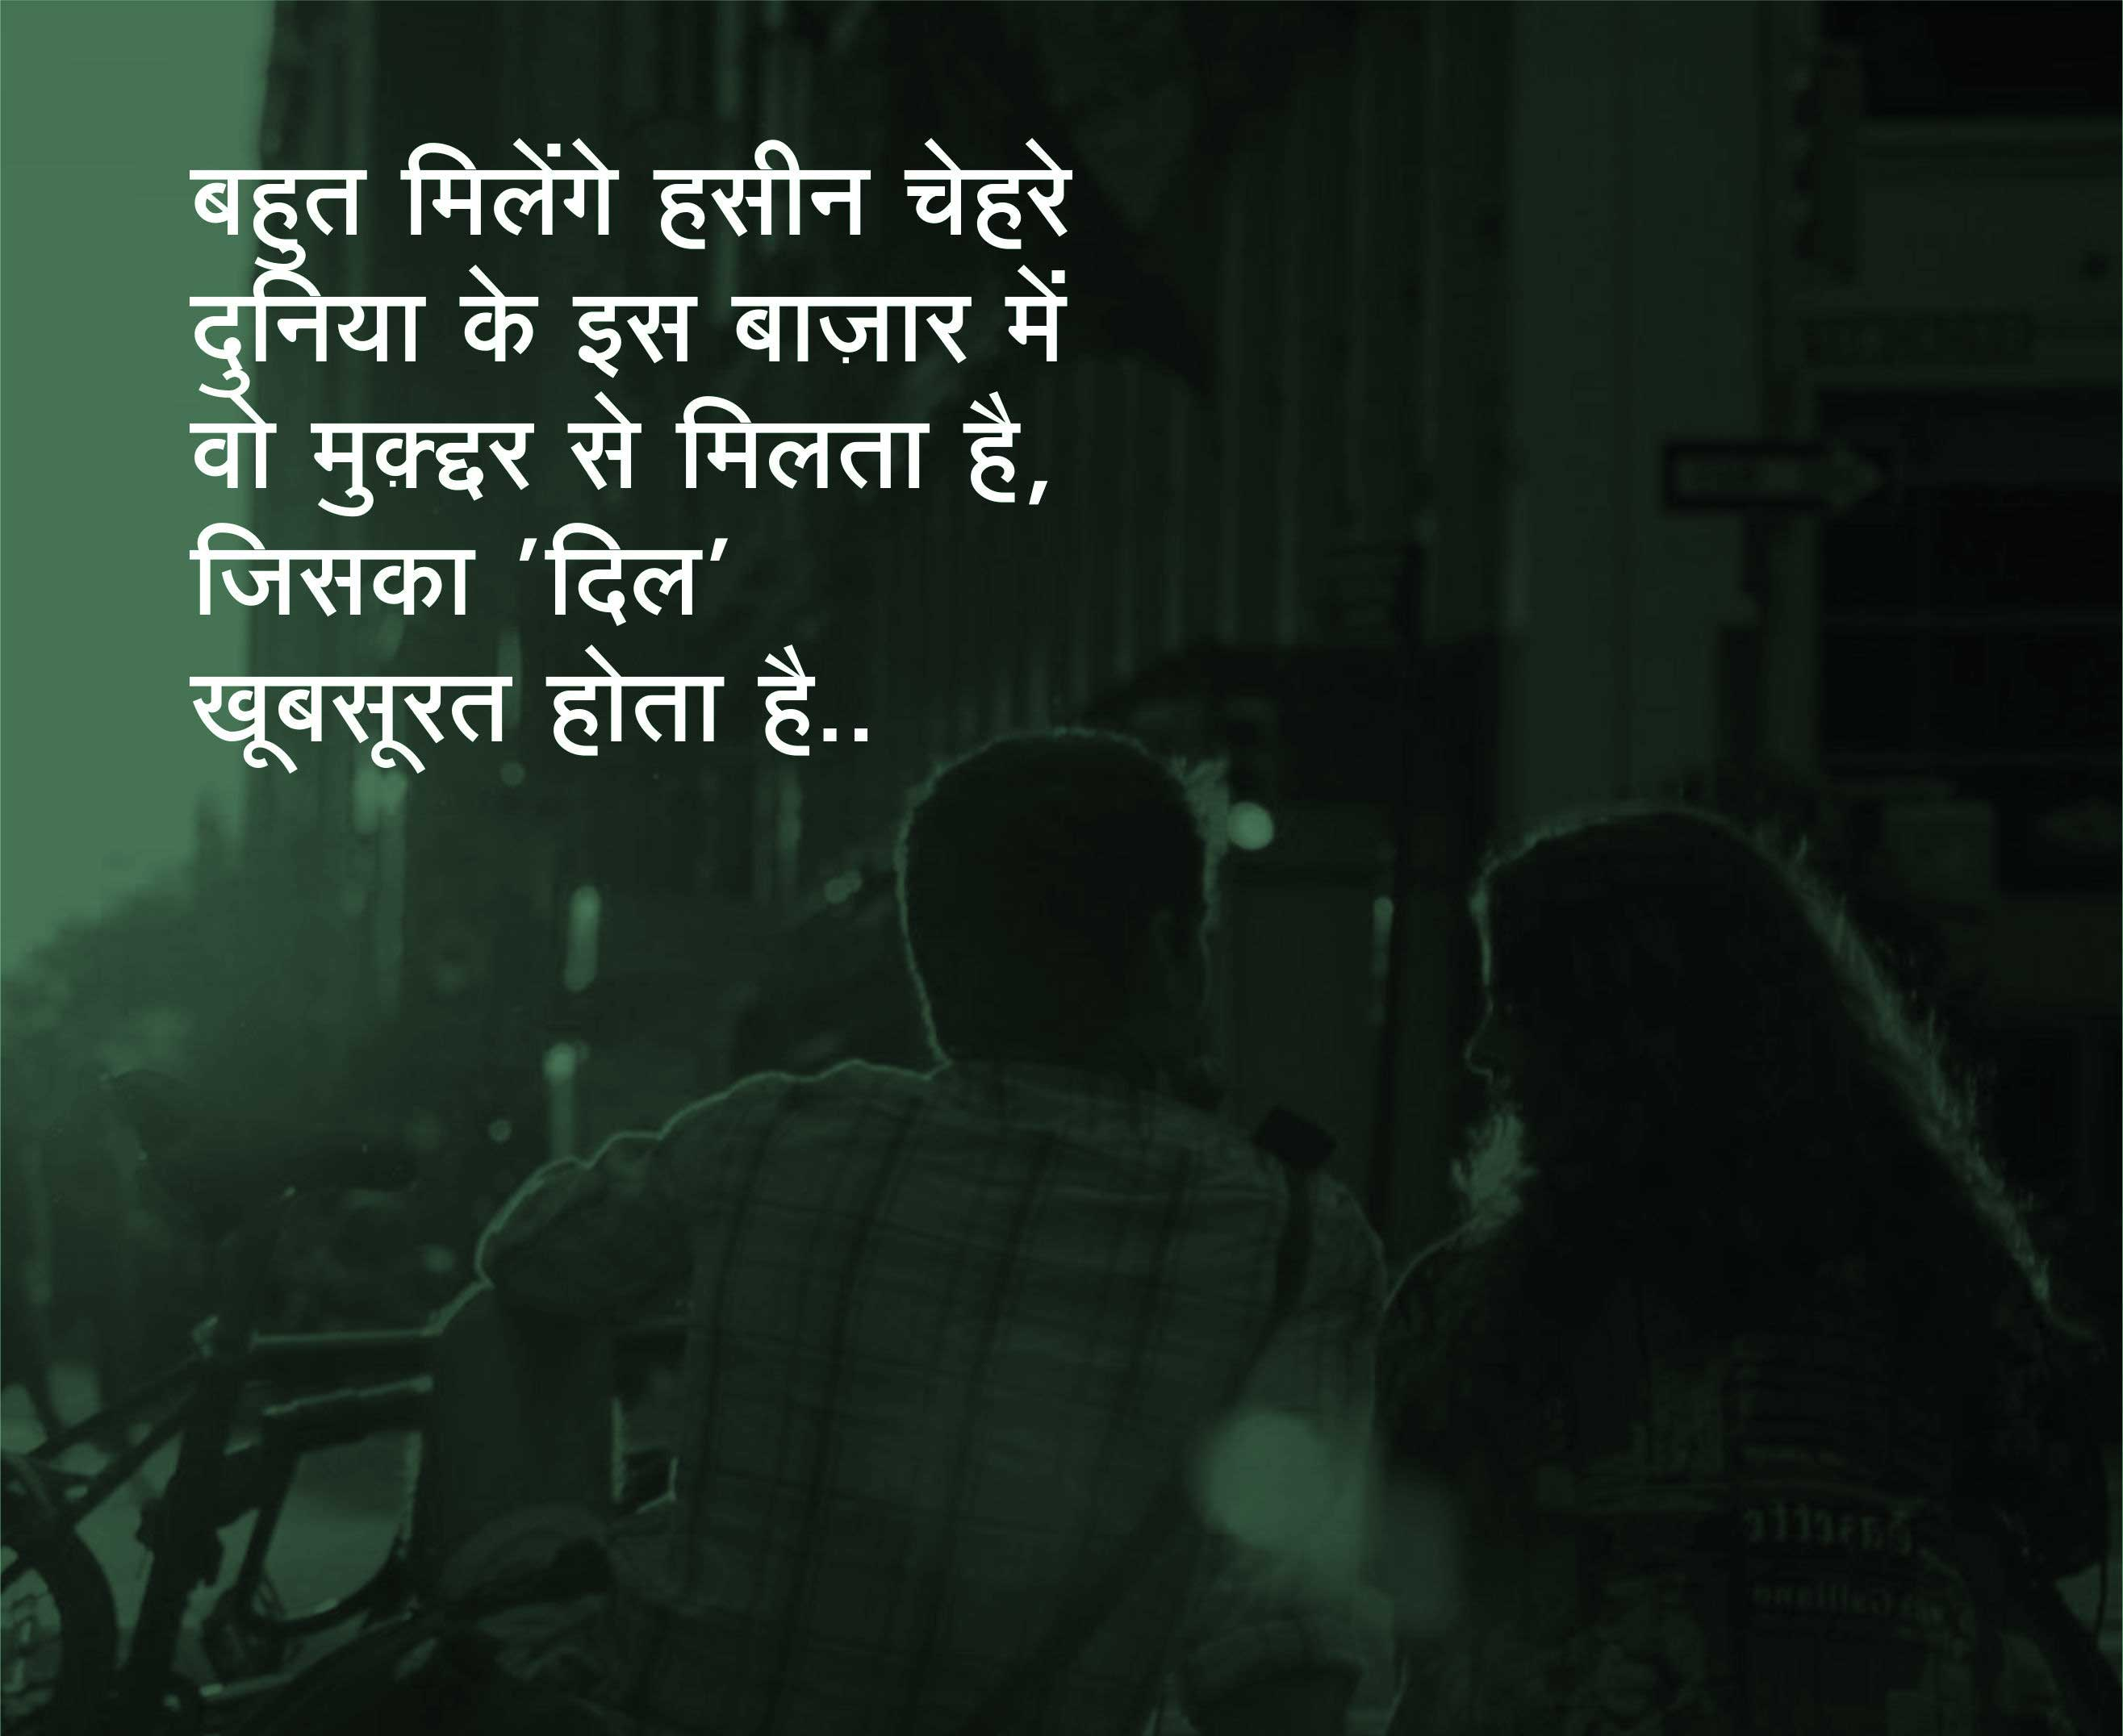 Judai Shayari Images Hd